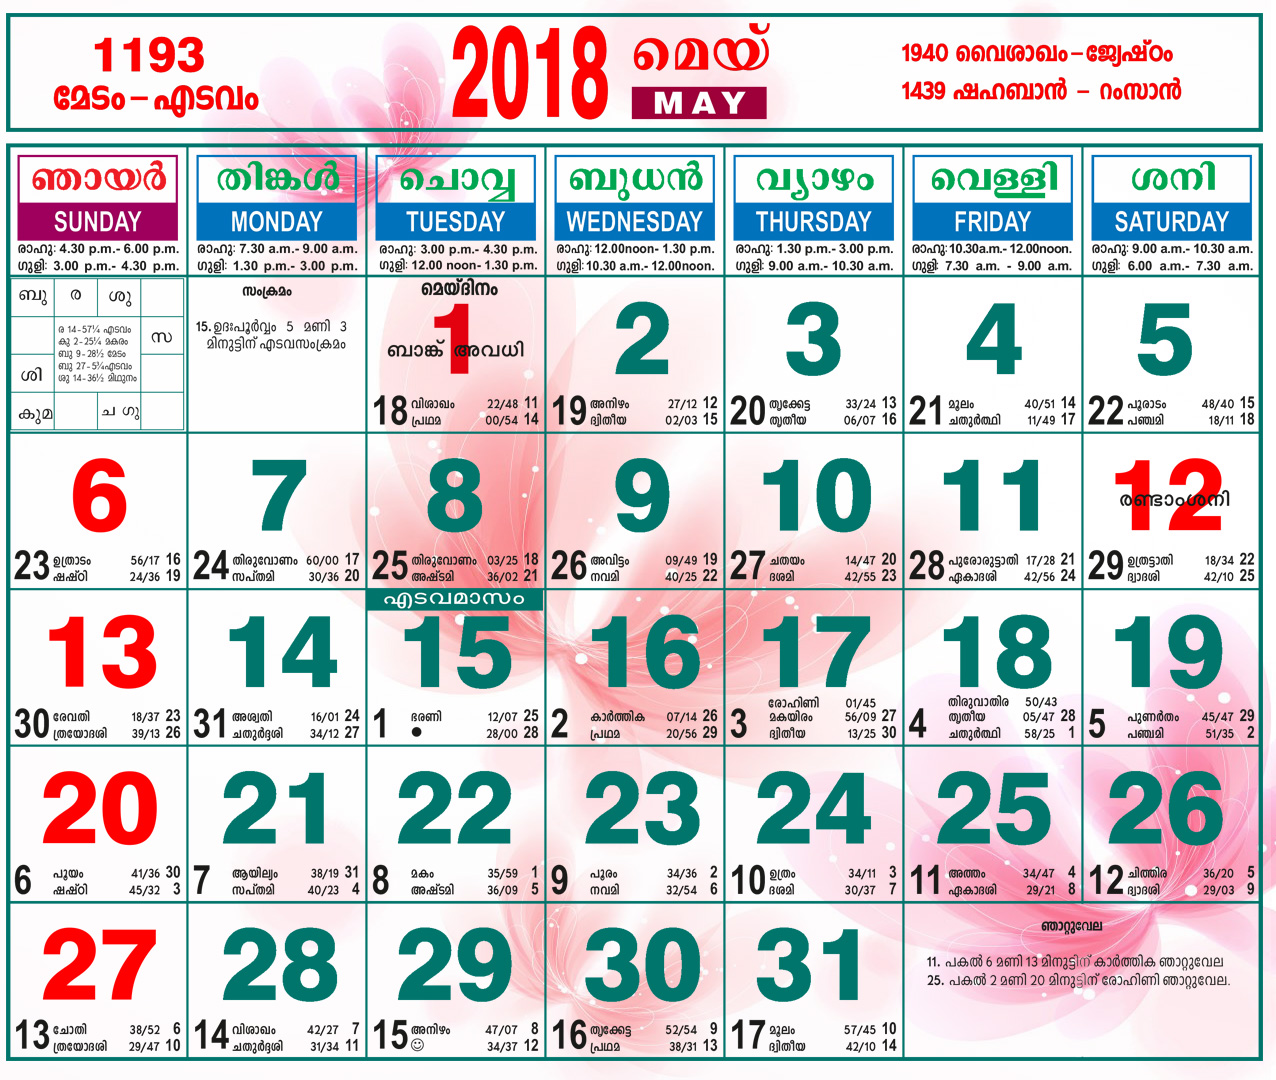 May 2018 Calendar in Tamil